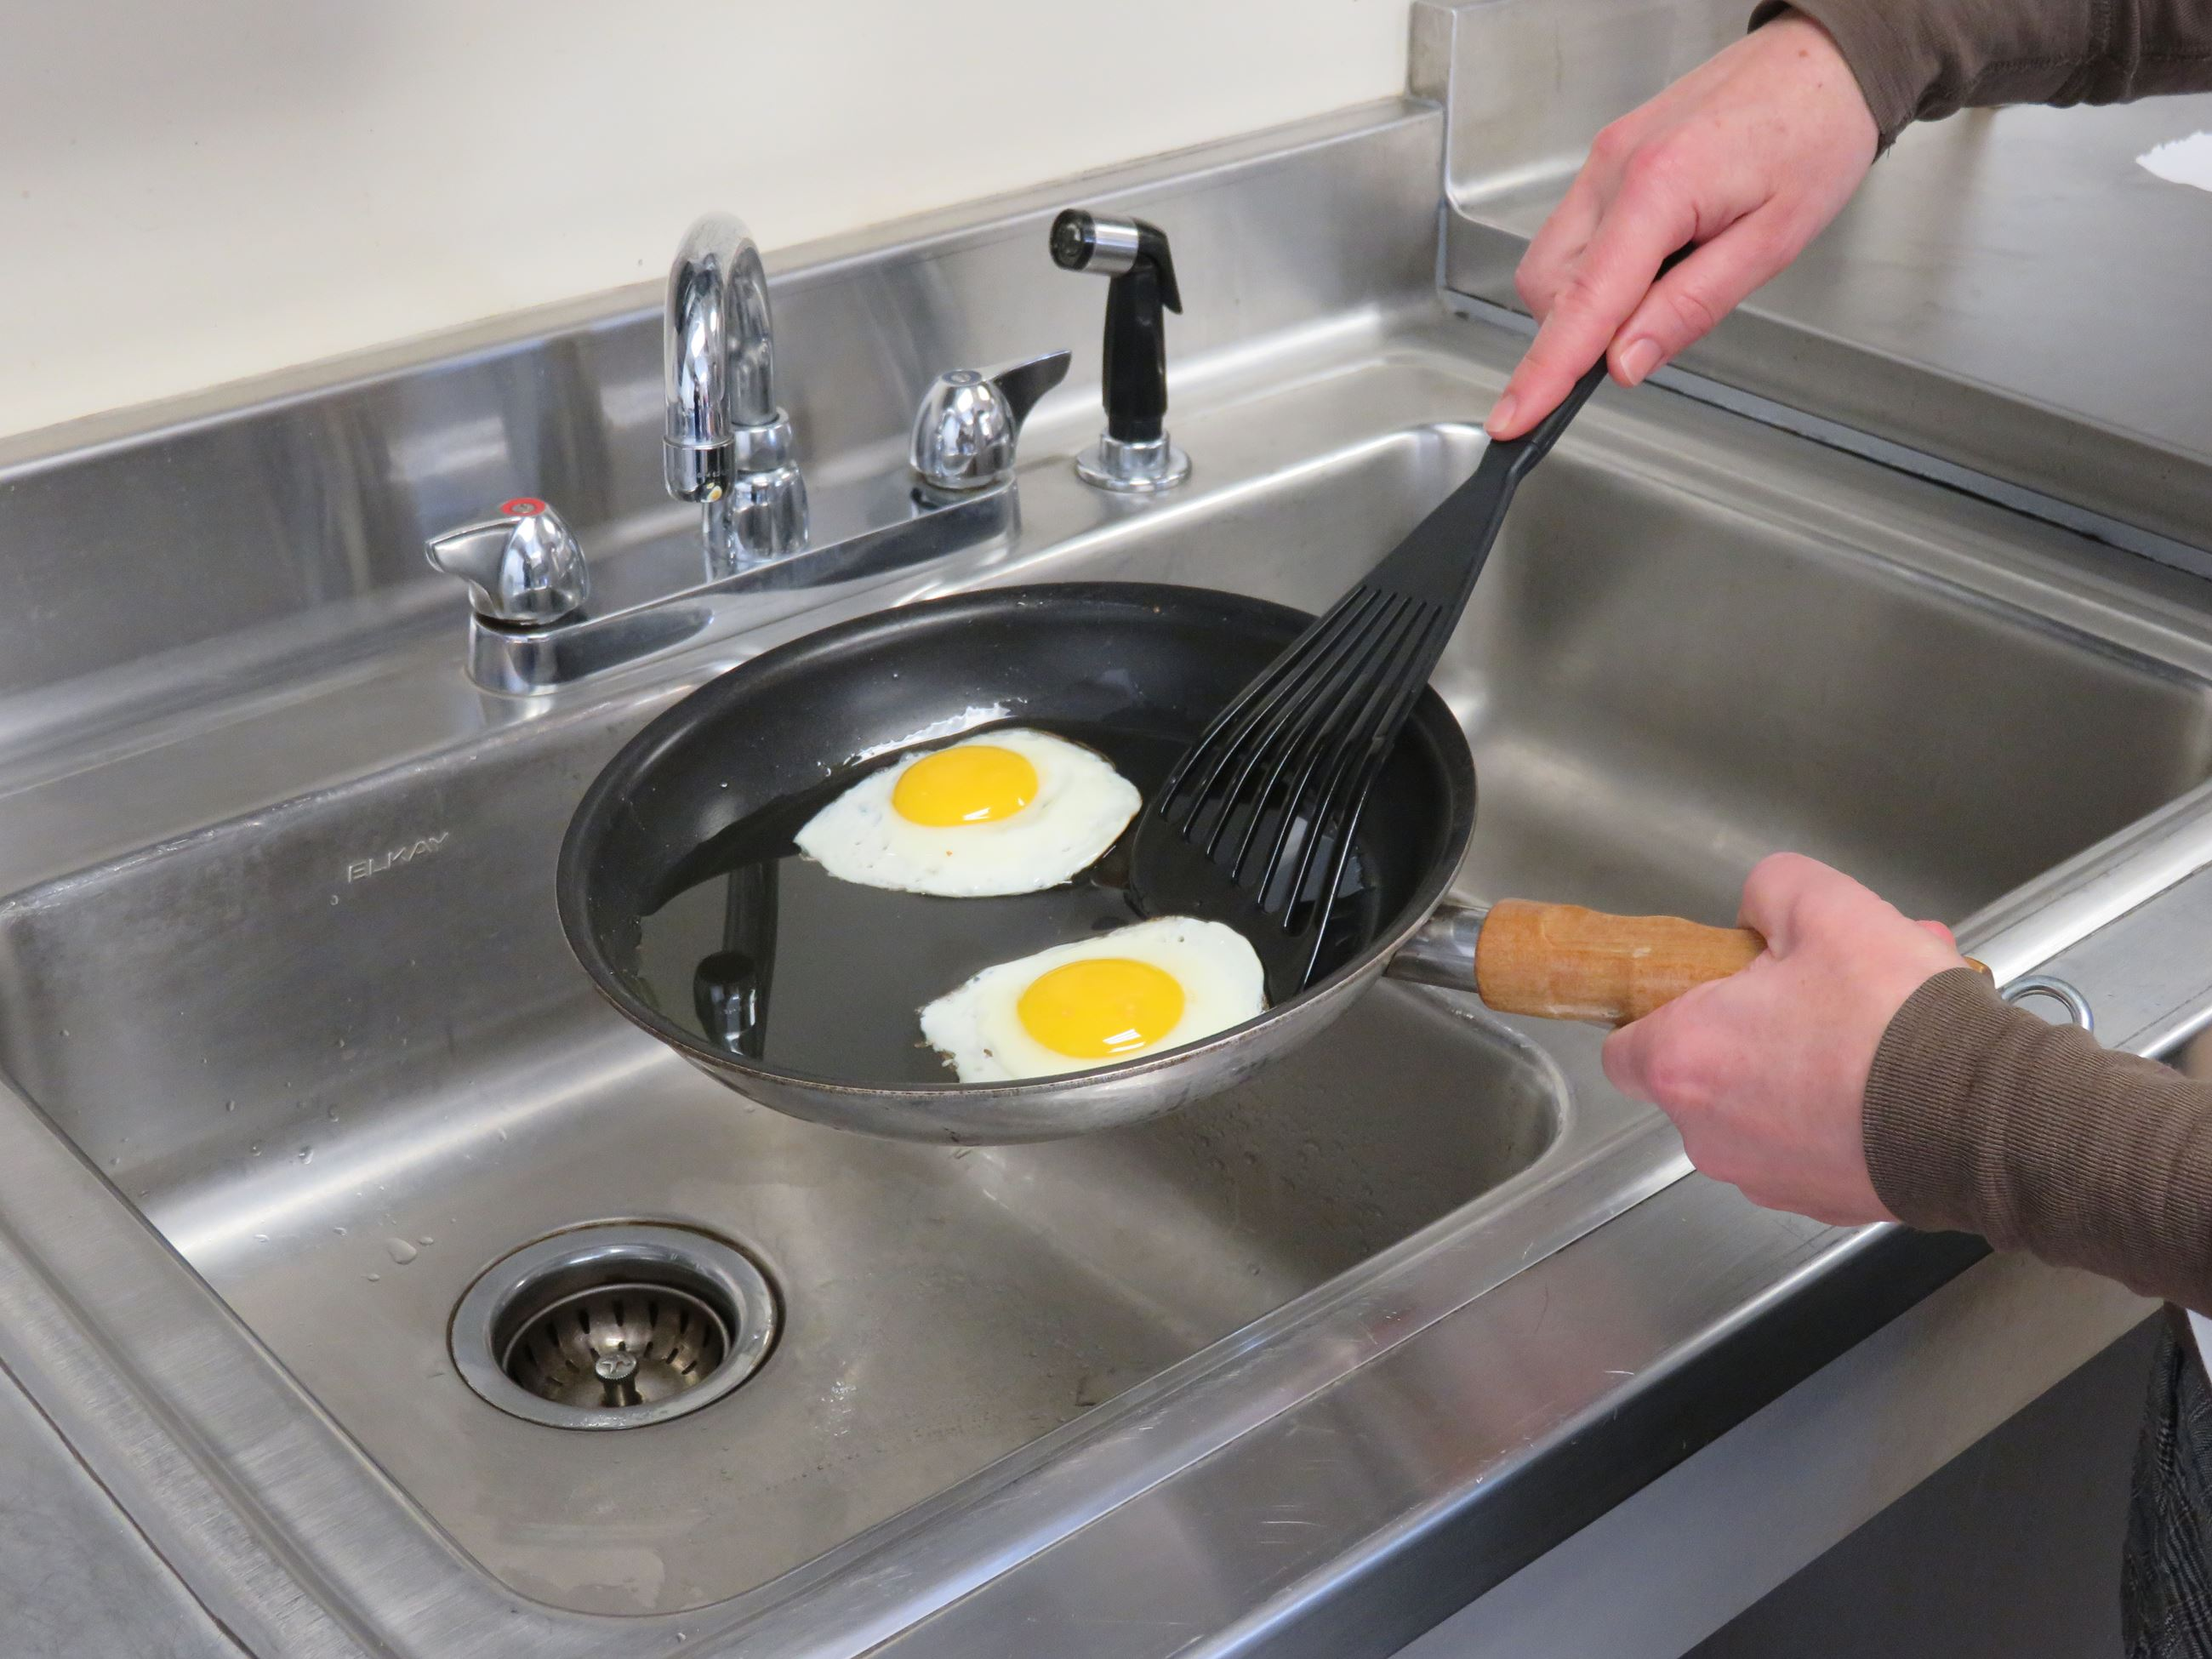 Person about to put fried eggs into the sink to dispose of them.